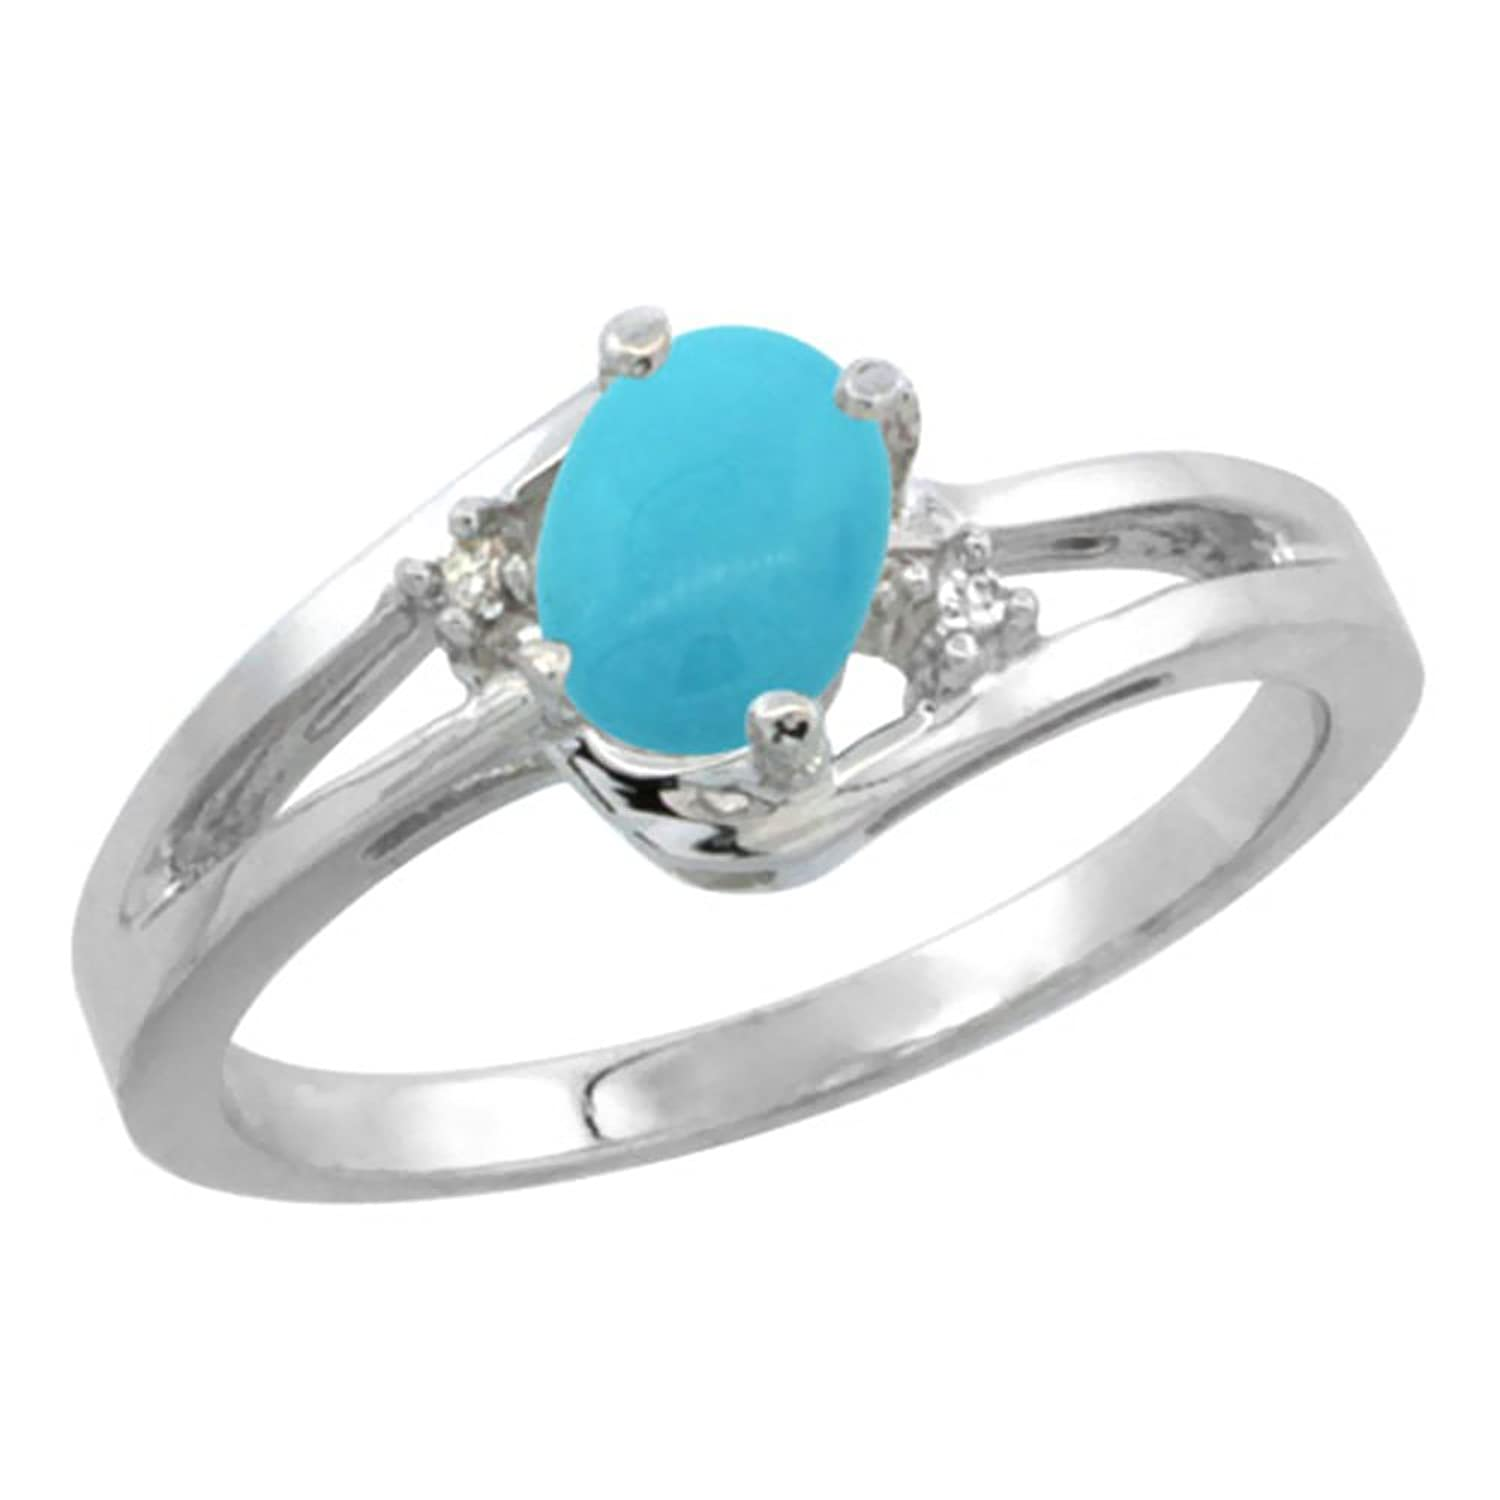 10K White Gold Diamond Natural Turquoise Ring Oval 6×4 mm, sizes 5-10